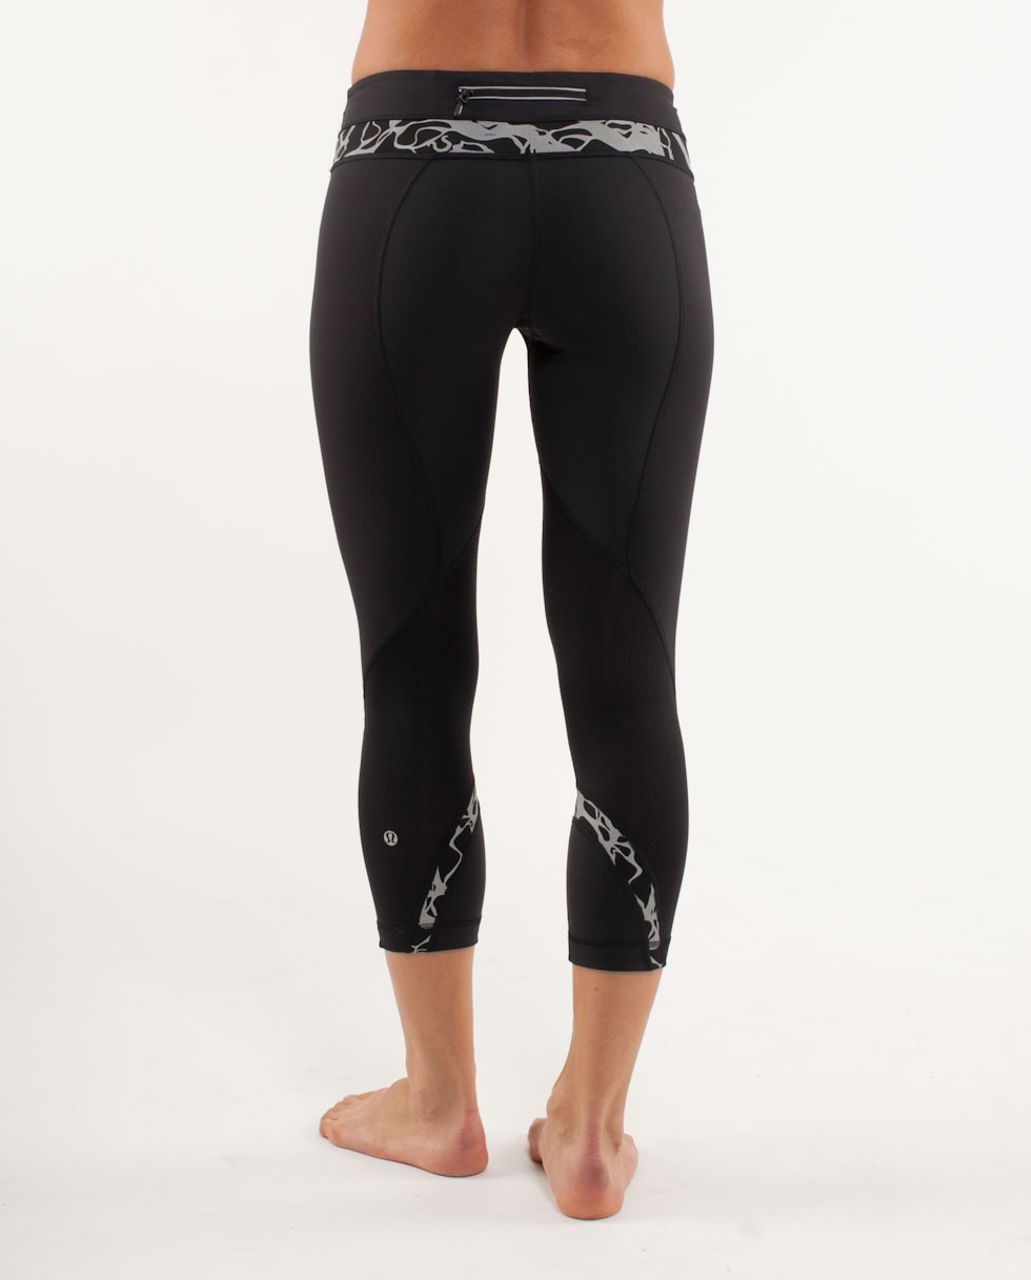 Lululemon Run:  Inspire Crop II - Black /  Reflective Sparkle Splatter /  Heathered Black